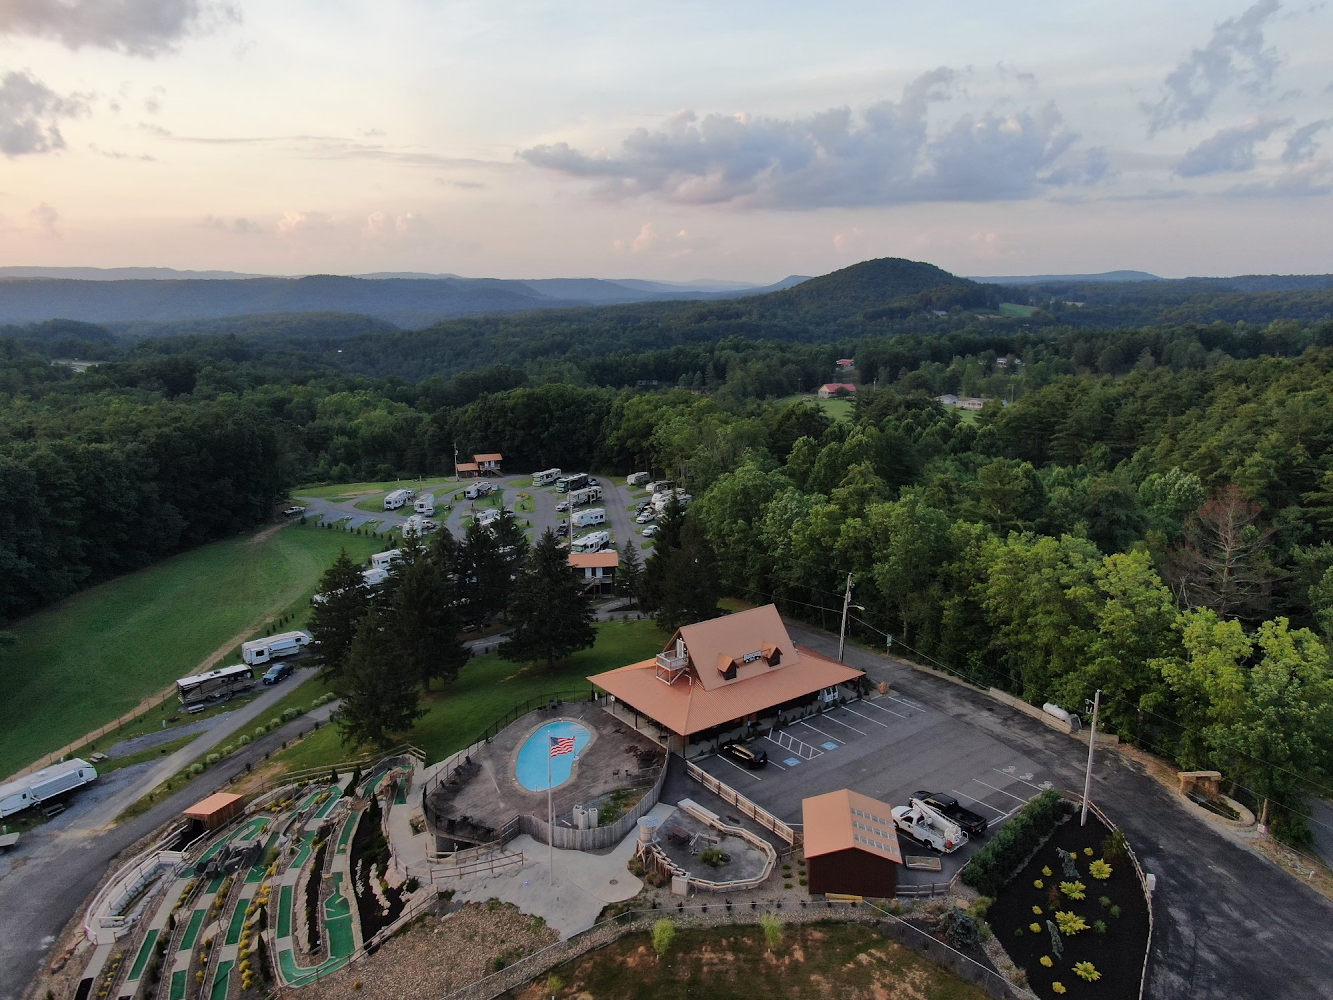 """Brushcreek Falls RV Resort: Becoming the """"destination"""" for vacations and staycations alike"""